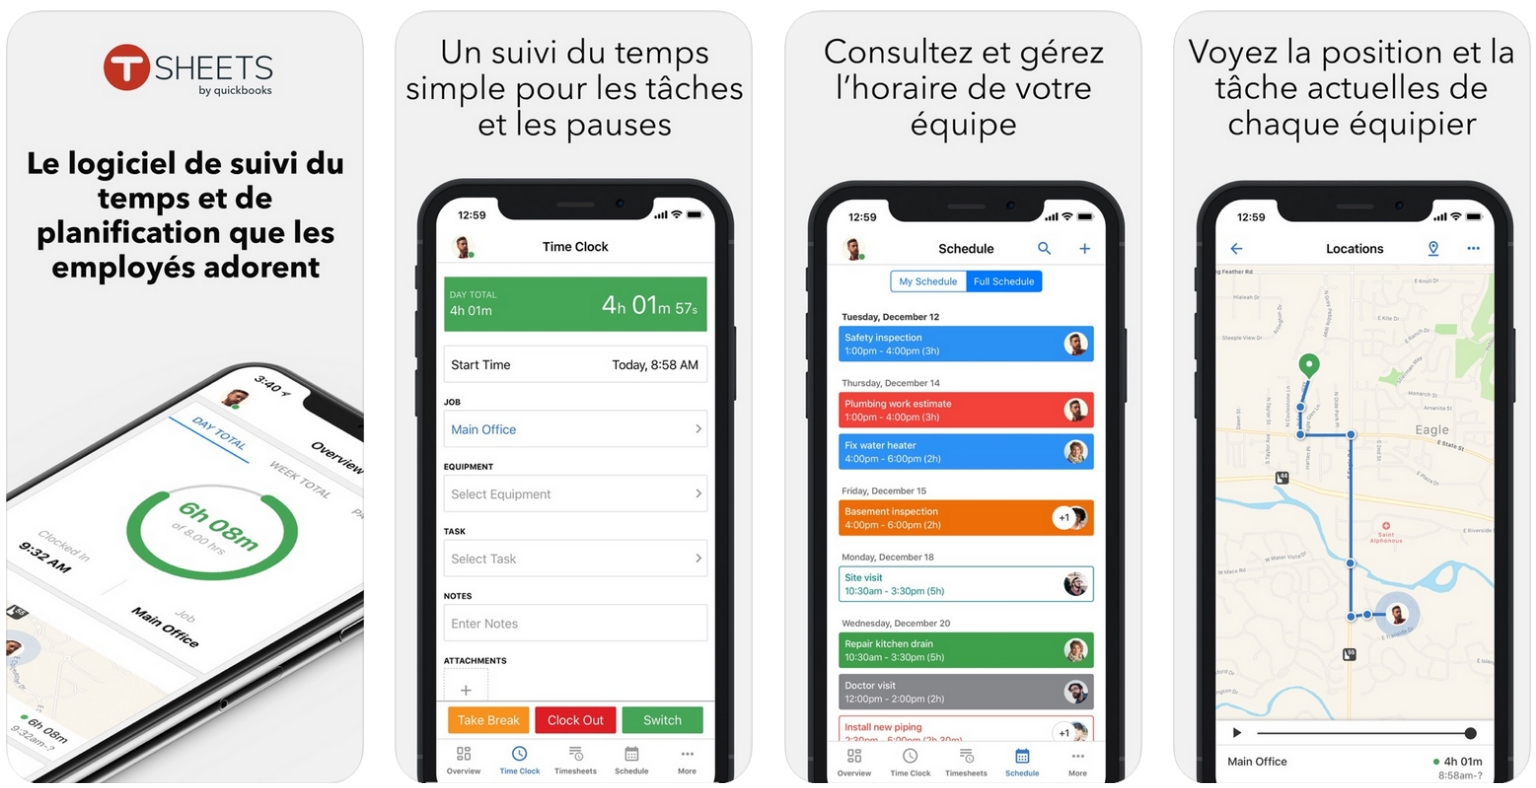 Meilleures applications pour Architectes - tsheets